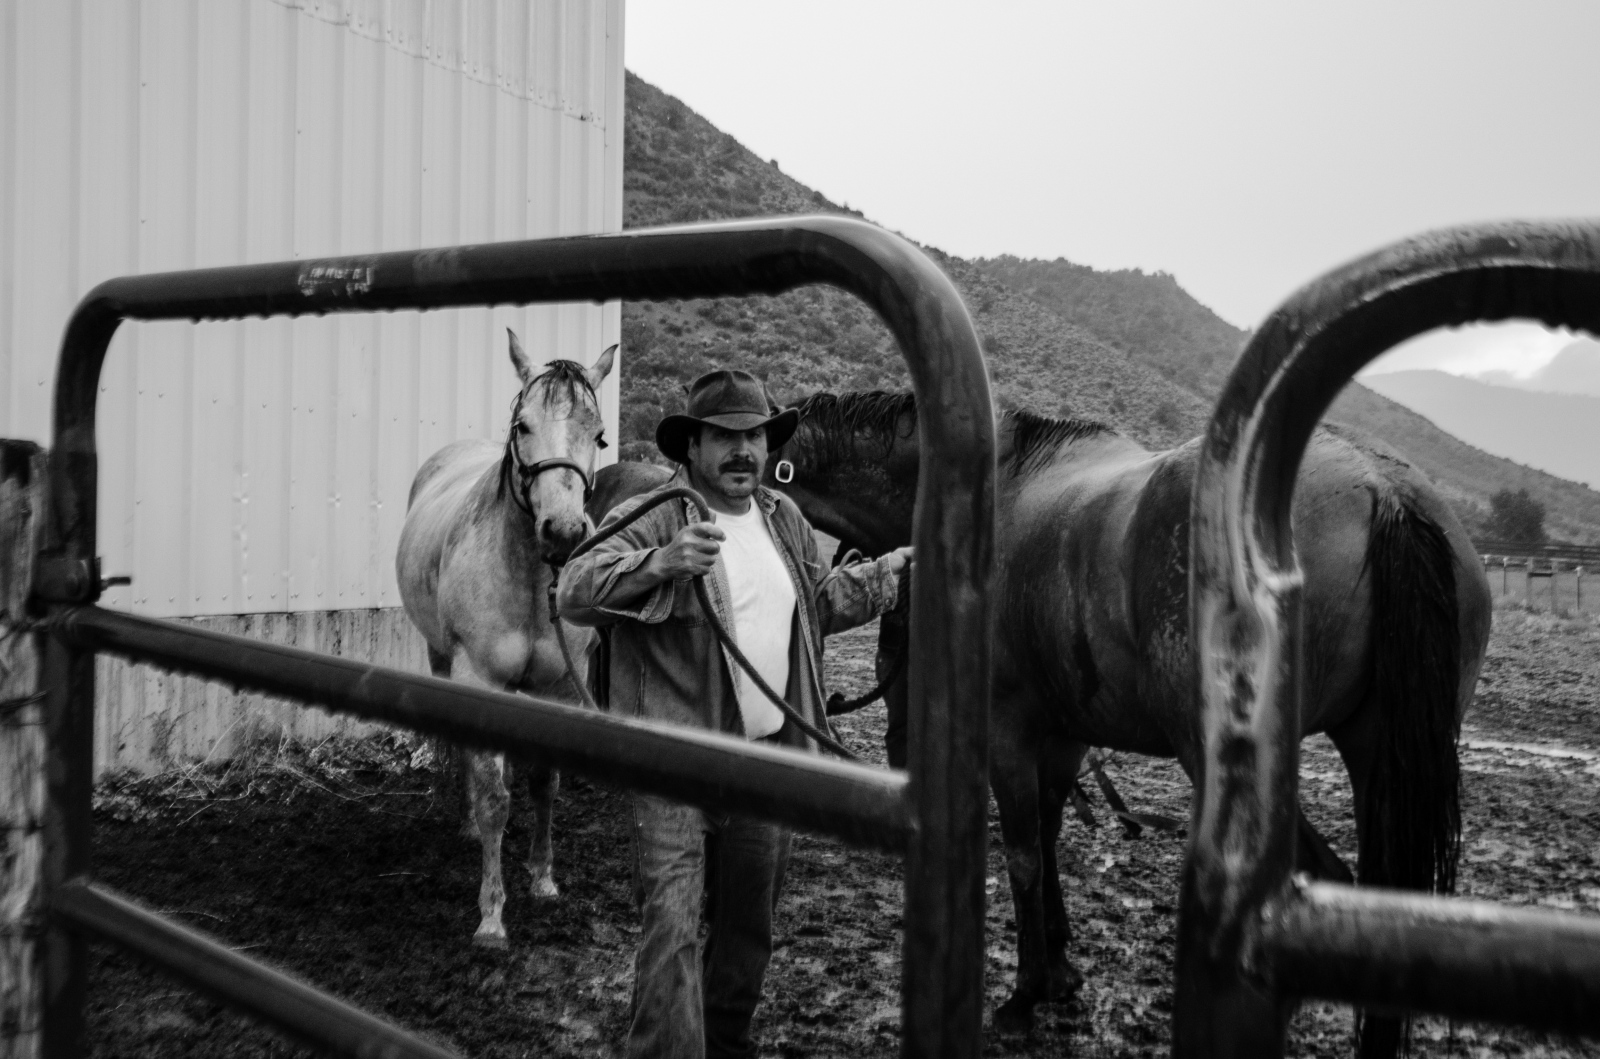 Jose G. leads in two horses for the afternoon feeding.  It is not uncommon to see the men harness and lead up to five horses at a time.  They are intimately familiar with the personalities of the over 80 horses.